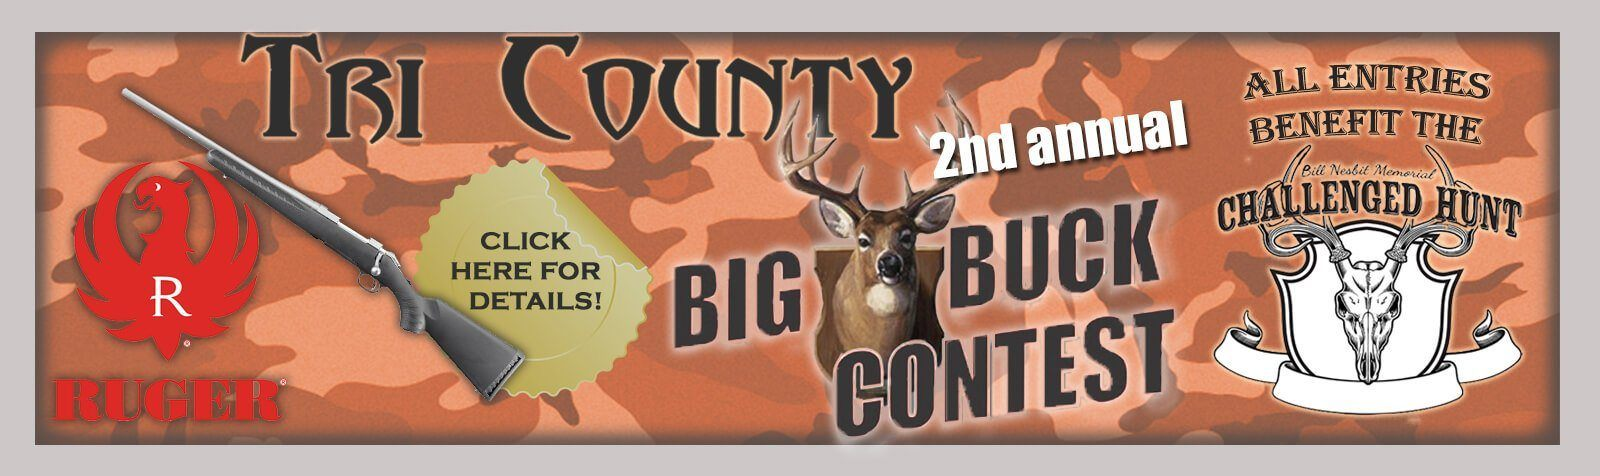 Big Buck Contest Banner